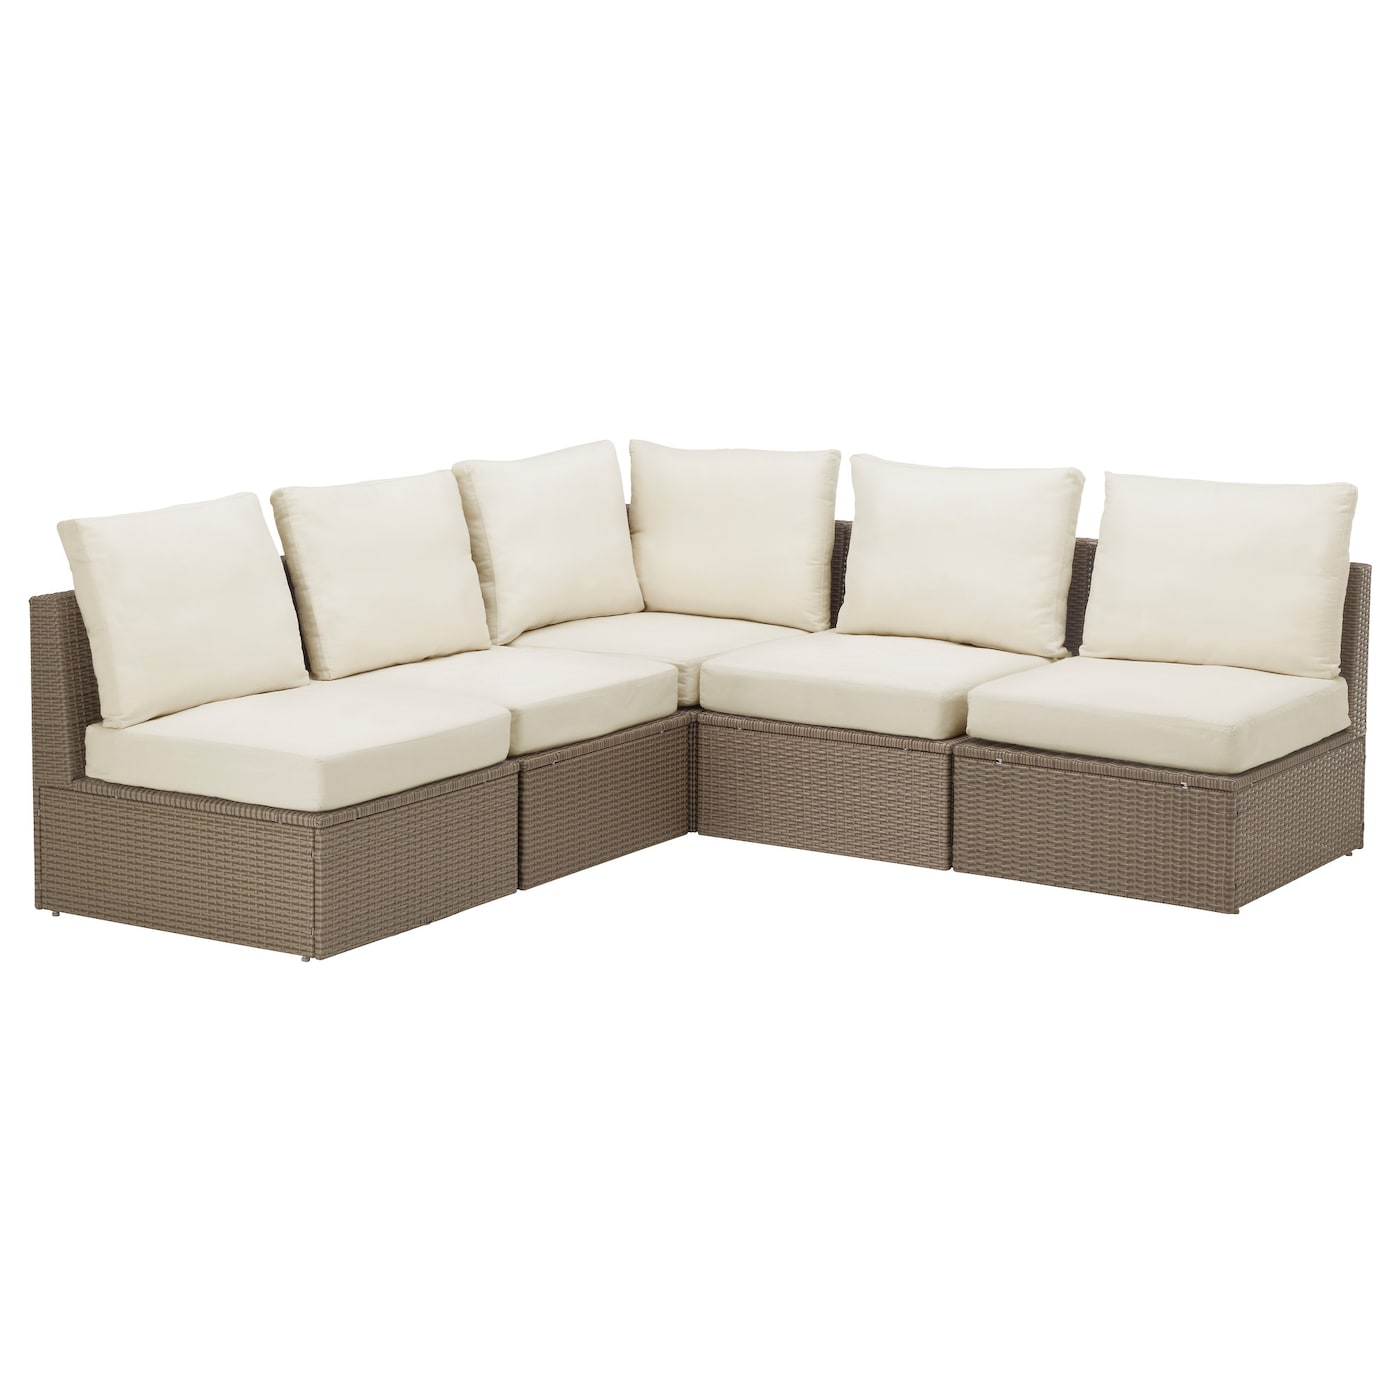 Arholma corner sofa 3 2 outdoor brown beige 206 206x76x66 for Sofa exterior 120 cm